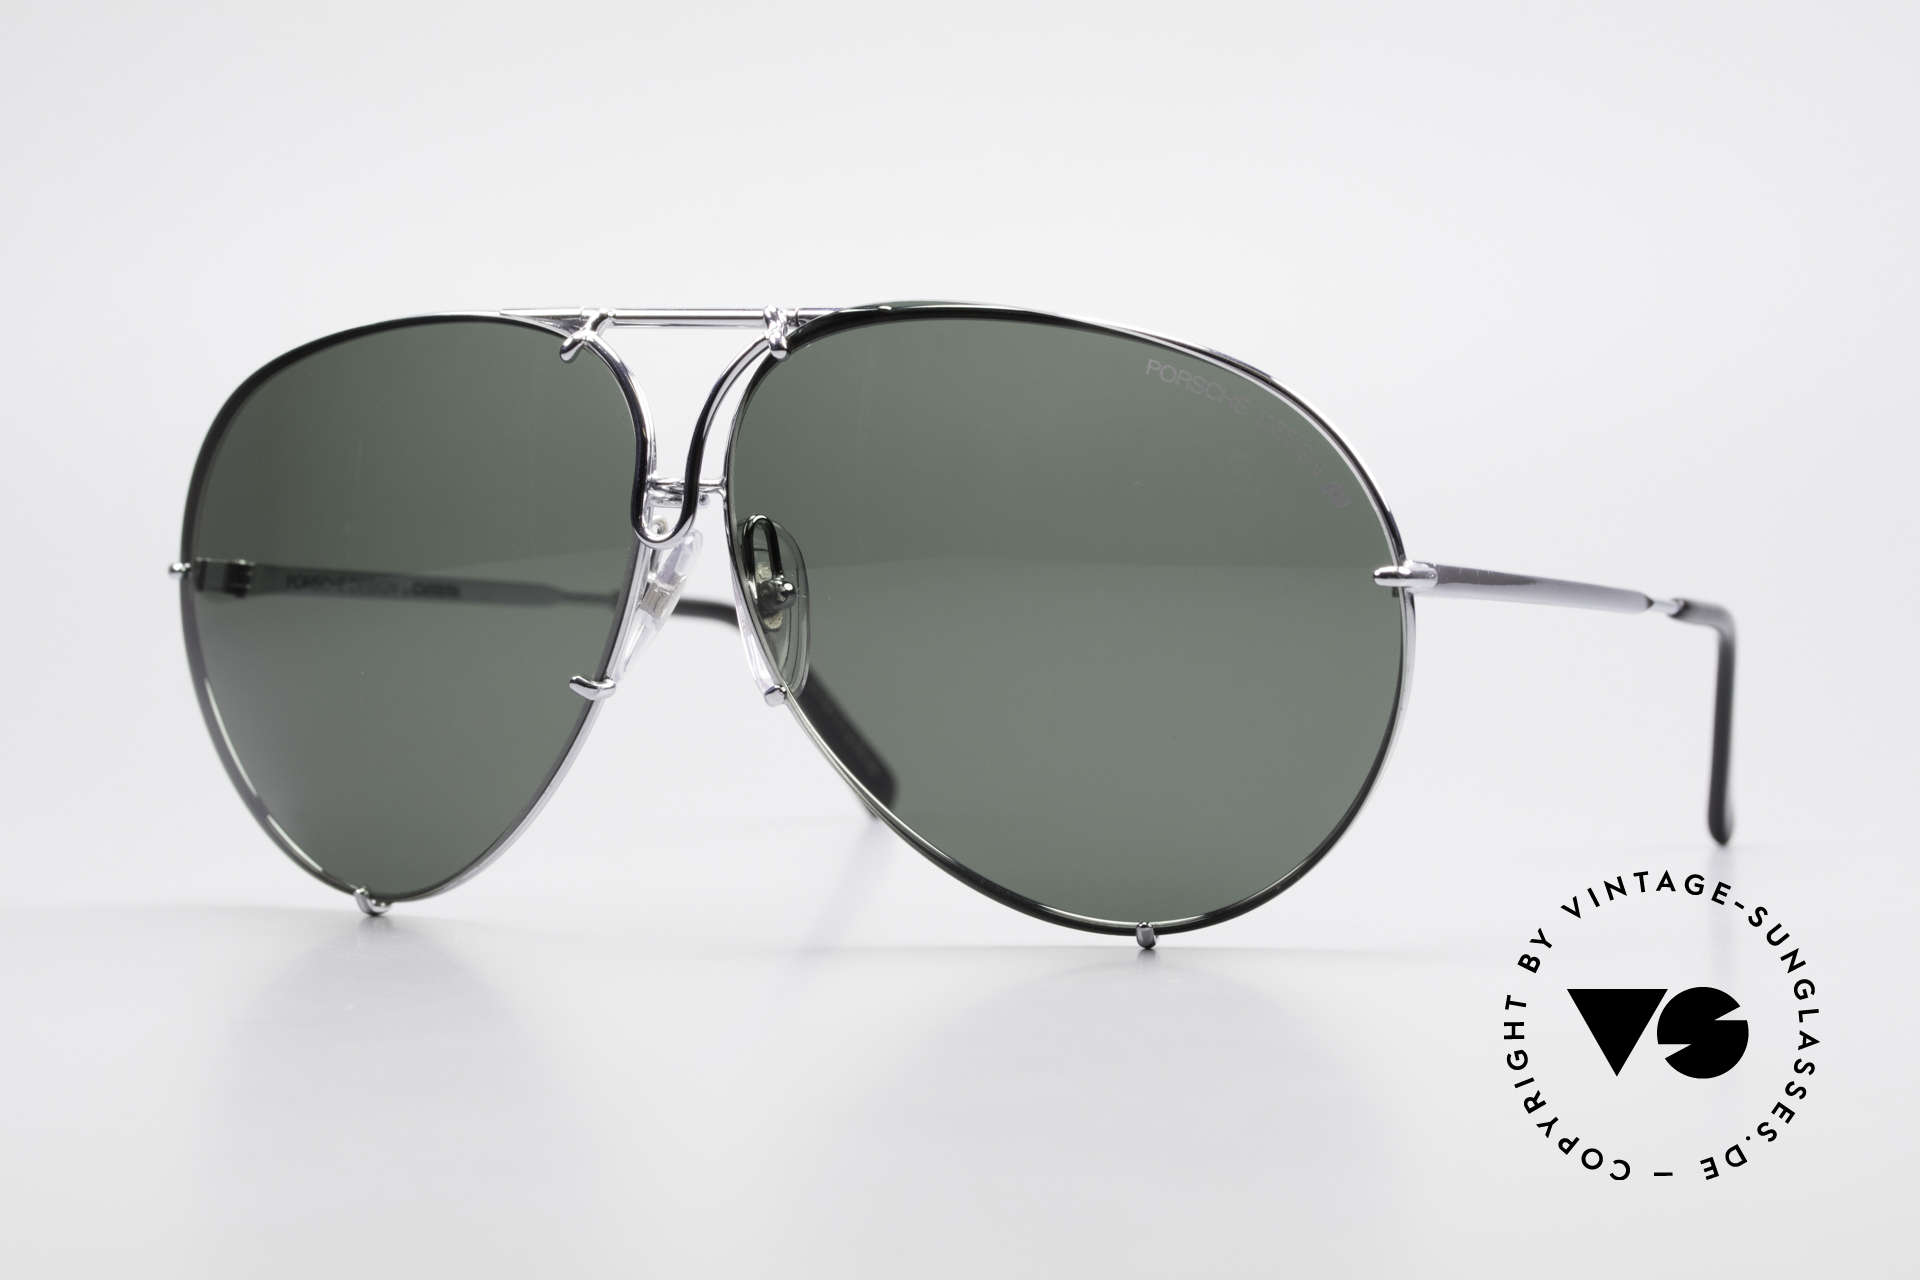 Porsche 5621 80's XL Aviator Sunglasses, unworn rarity incl. orig. hard case (collector's item), Made for Men and Women